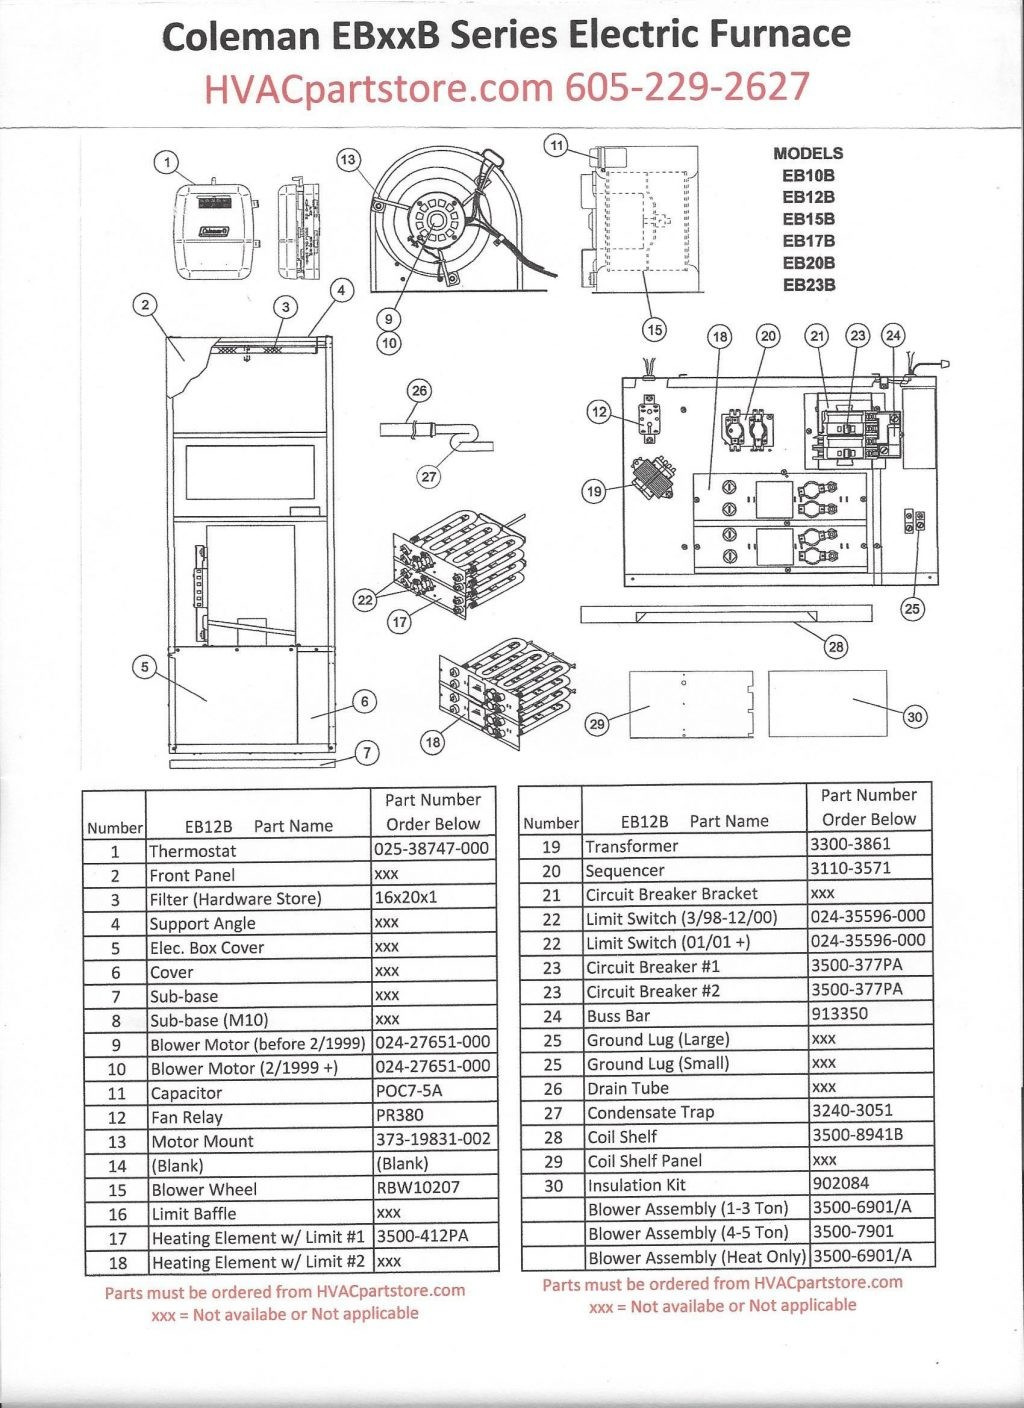 Williamson Furnace Wiring - Thermocouple Wiring Diagram -  tda2050.yenpancane.jeanjaures37.fr | Williamson Wiring Diagram |  | Wiring Diagram Resource